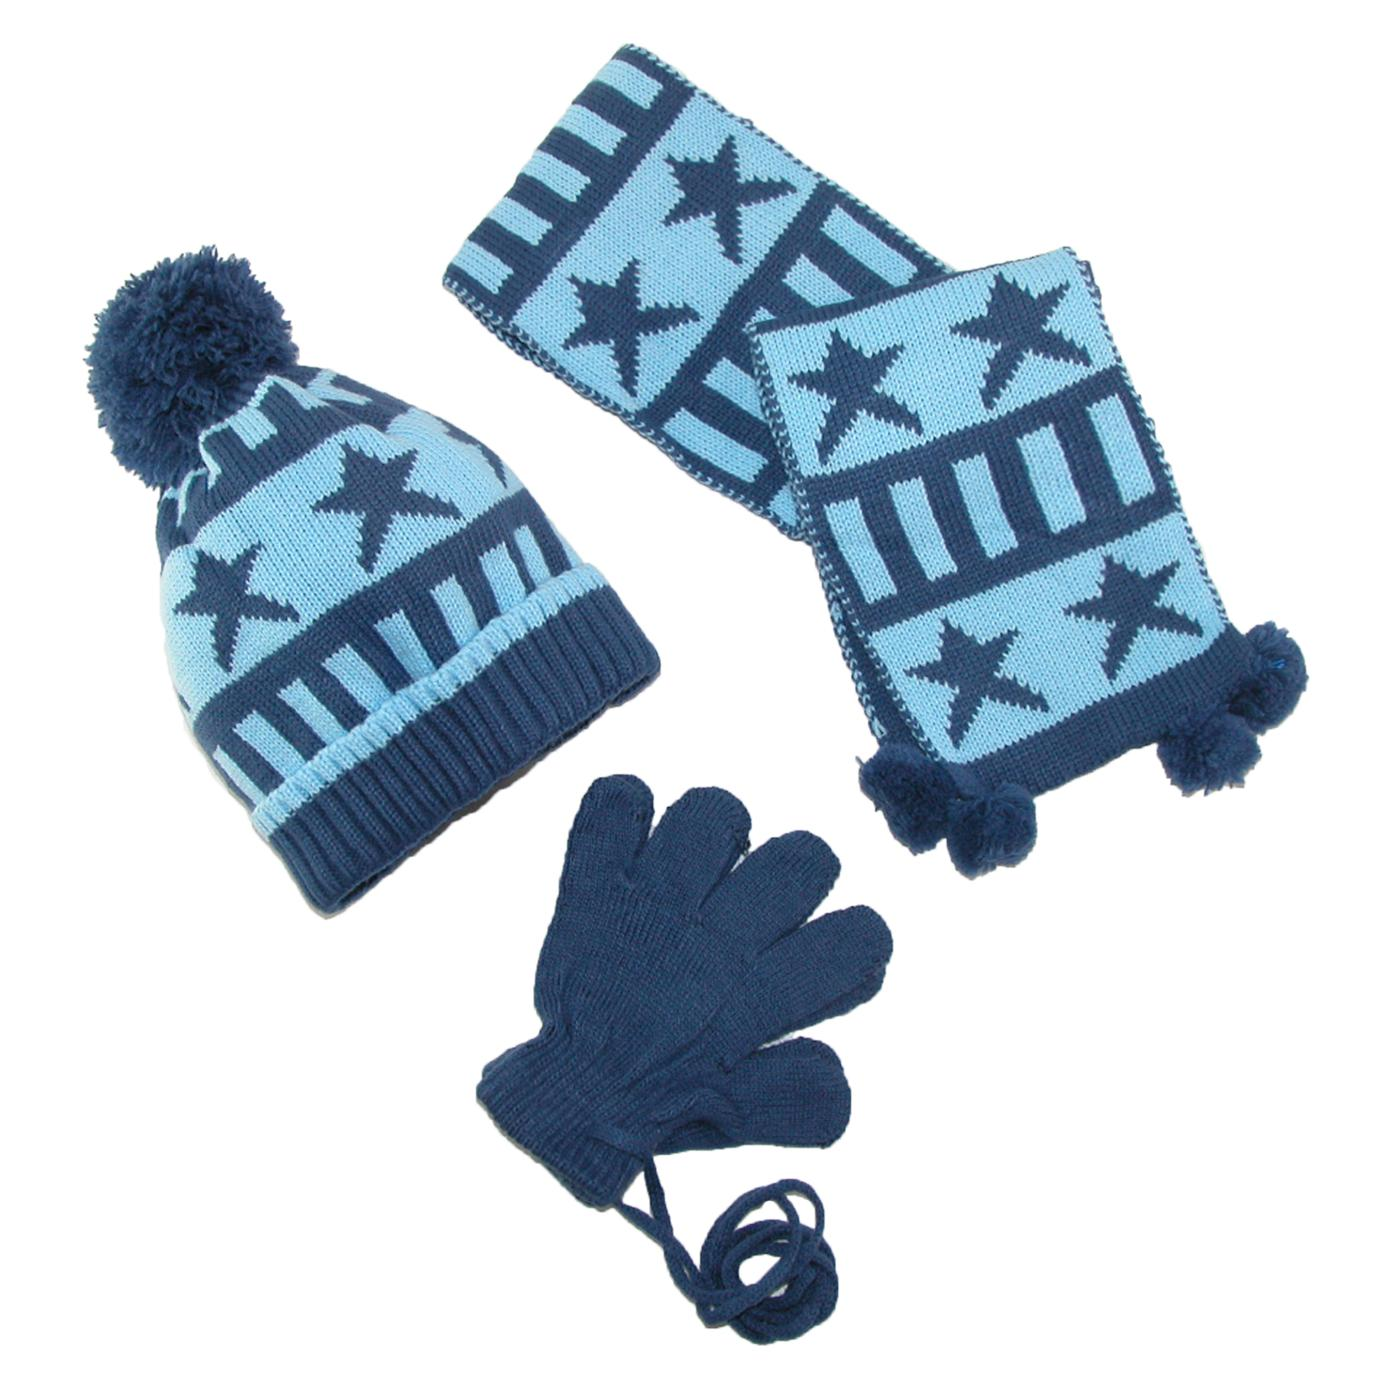 Hats and gloves clipart.